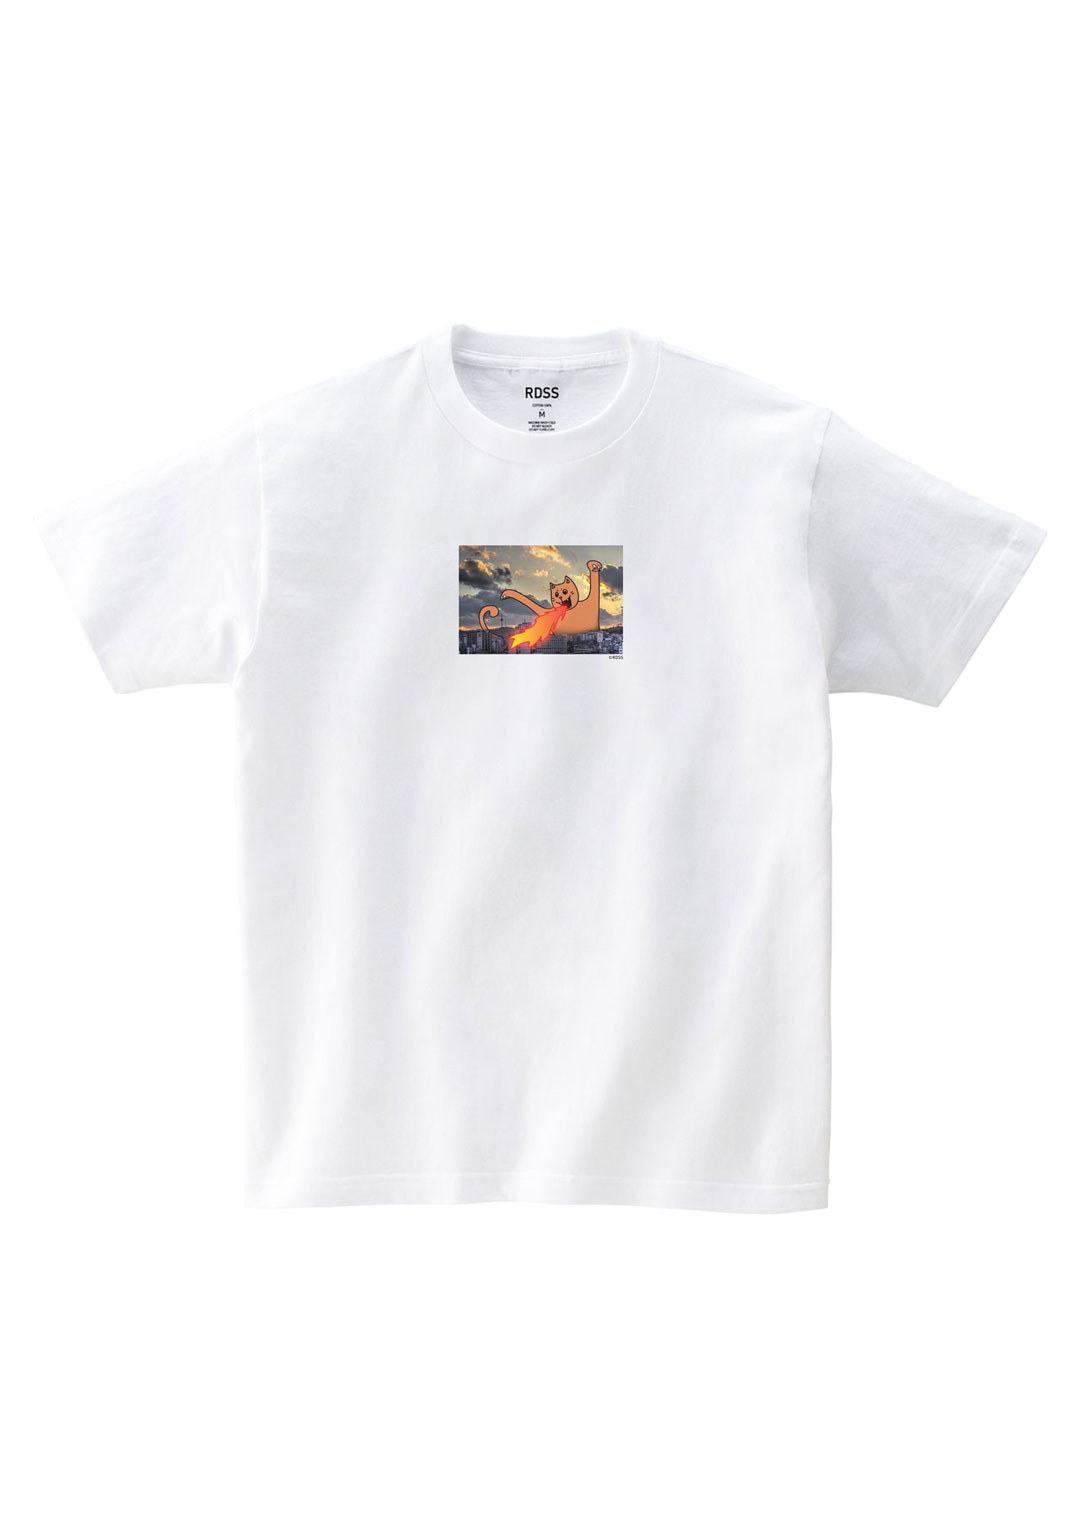 RDSS Fire Cat T-Shirt (White)